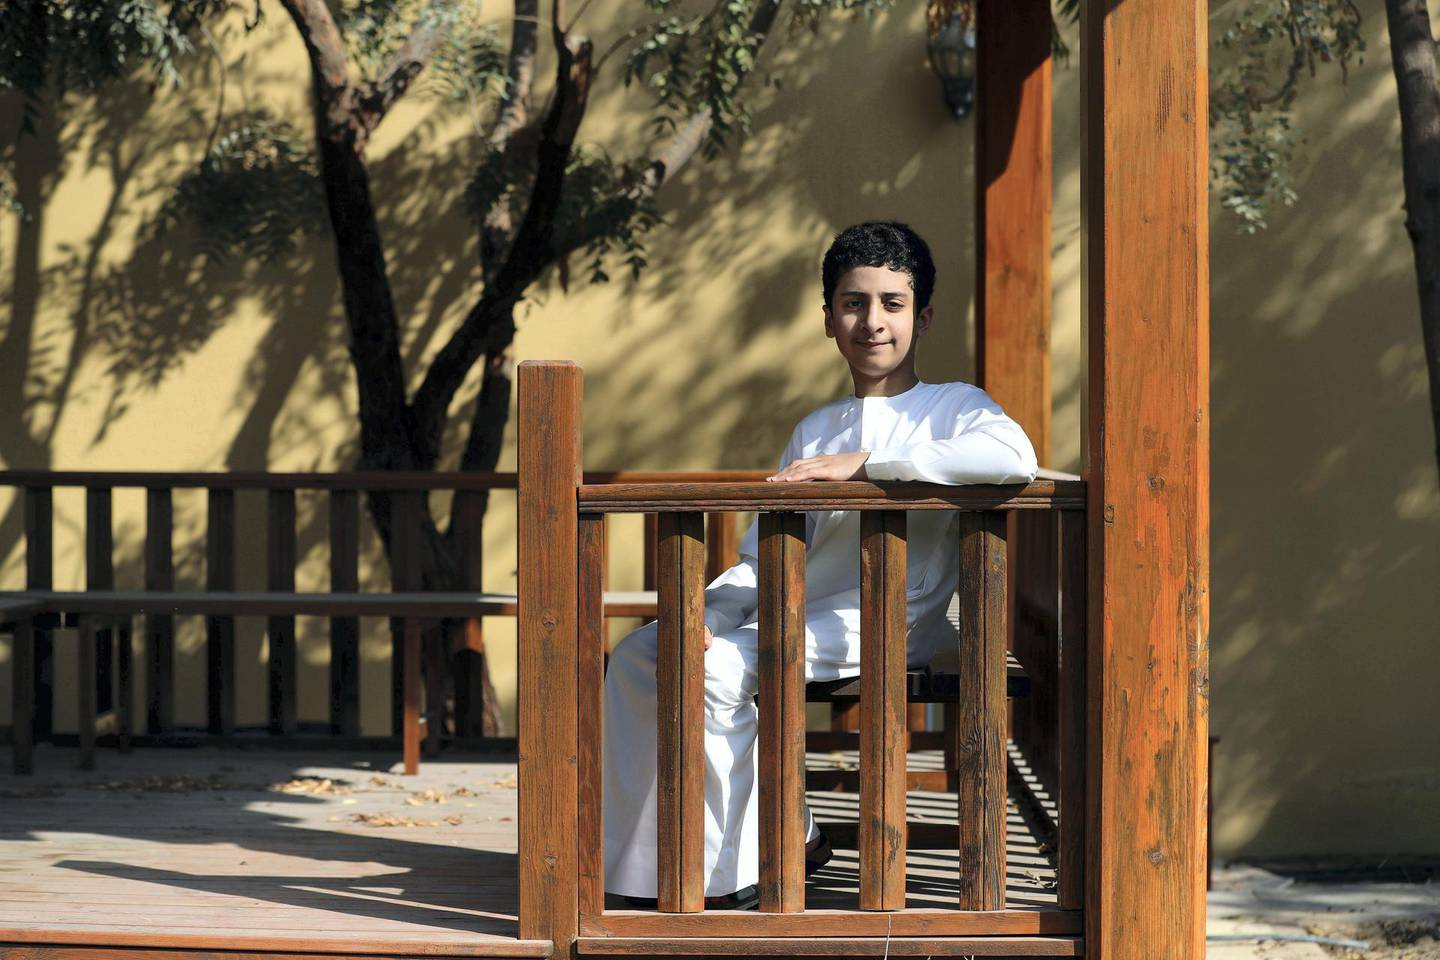 Dubai, United Arab Emirates - Reporter: Anam Rizvi. News. Ibrahim AlOwais. Ibrahim is a 12-year-old who has had cancer twice. He is a positive boy who talks about the challenges he faced and how he cheered himself up through treatments. Sunday, February 14th, 2021. Dubai. Chris Whiteoak / The National